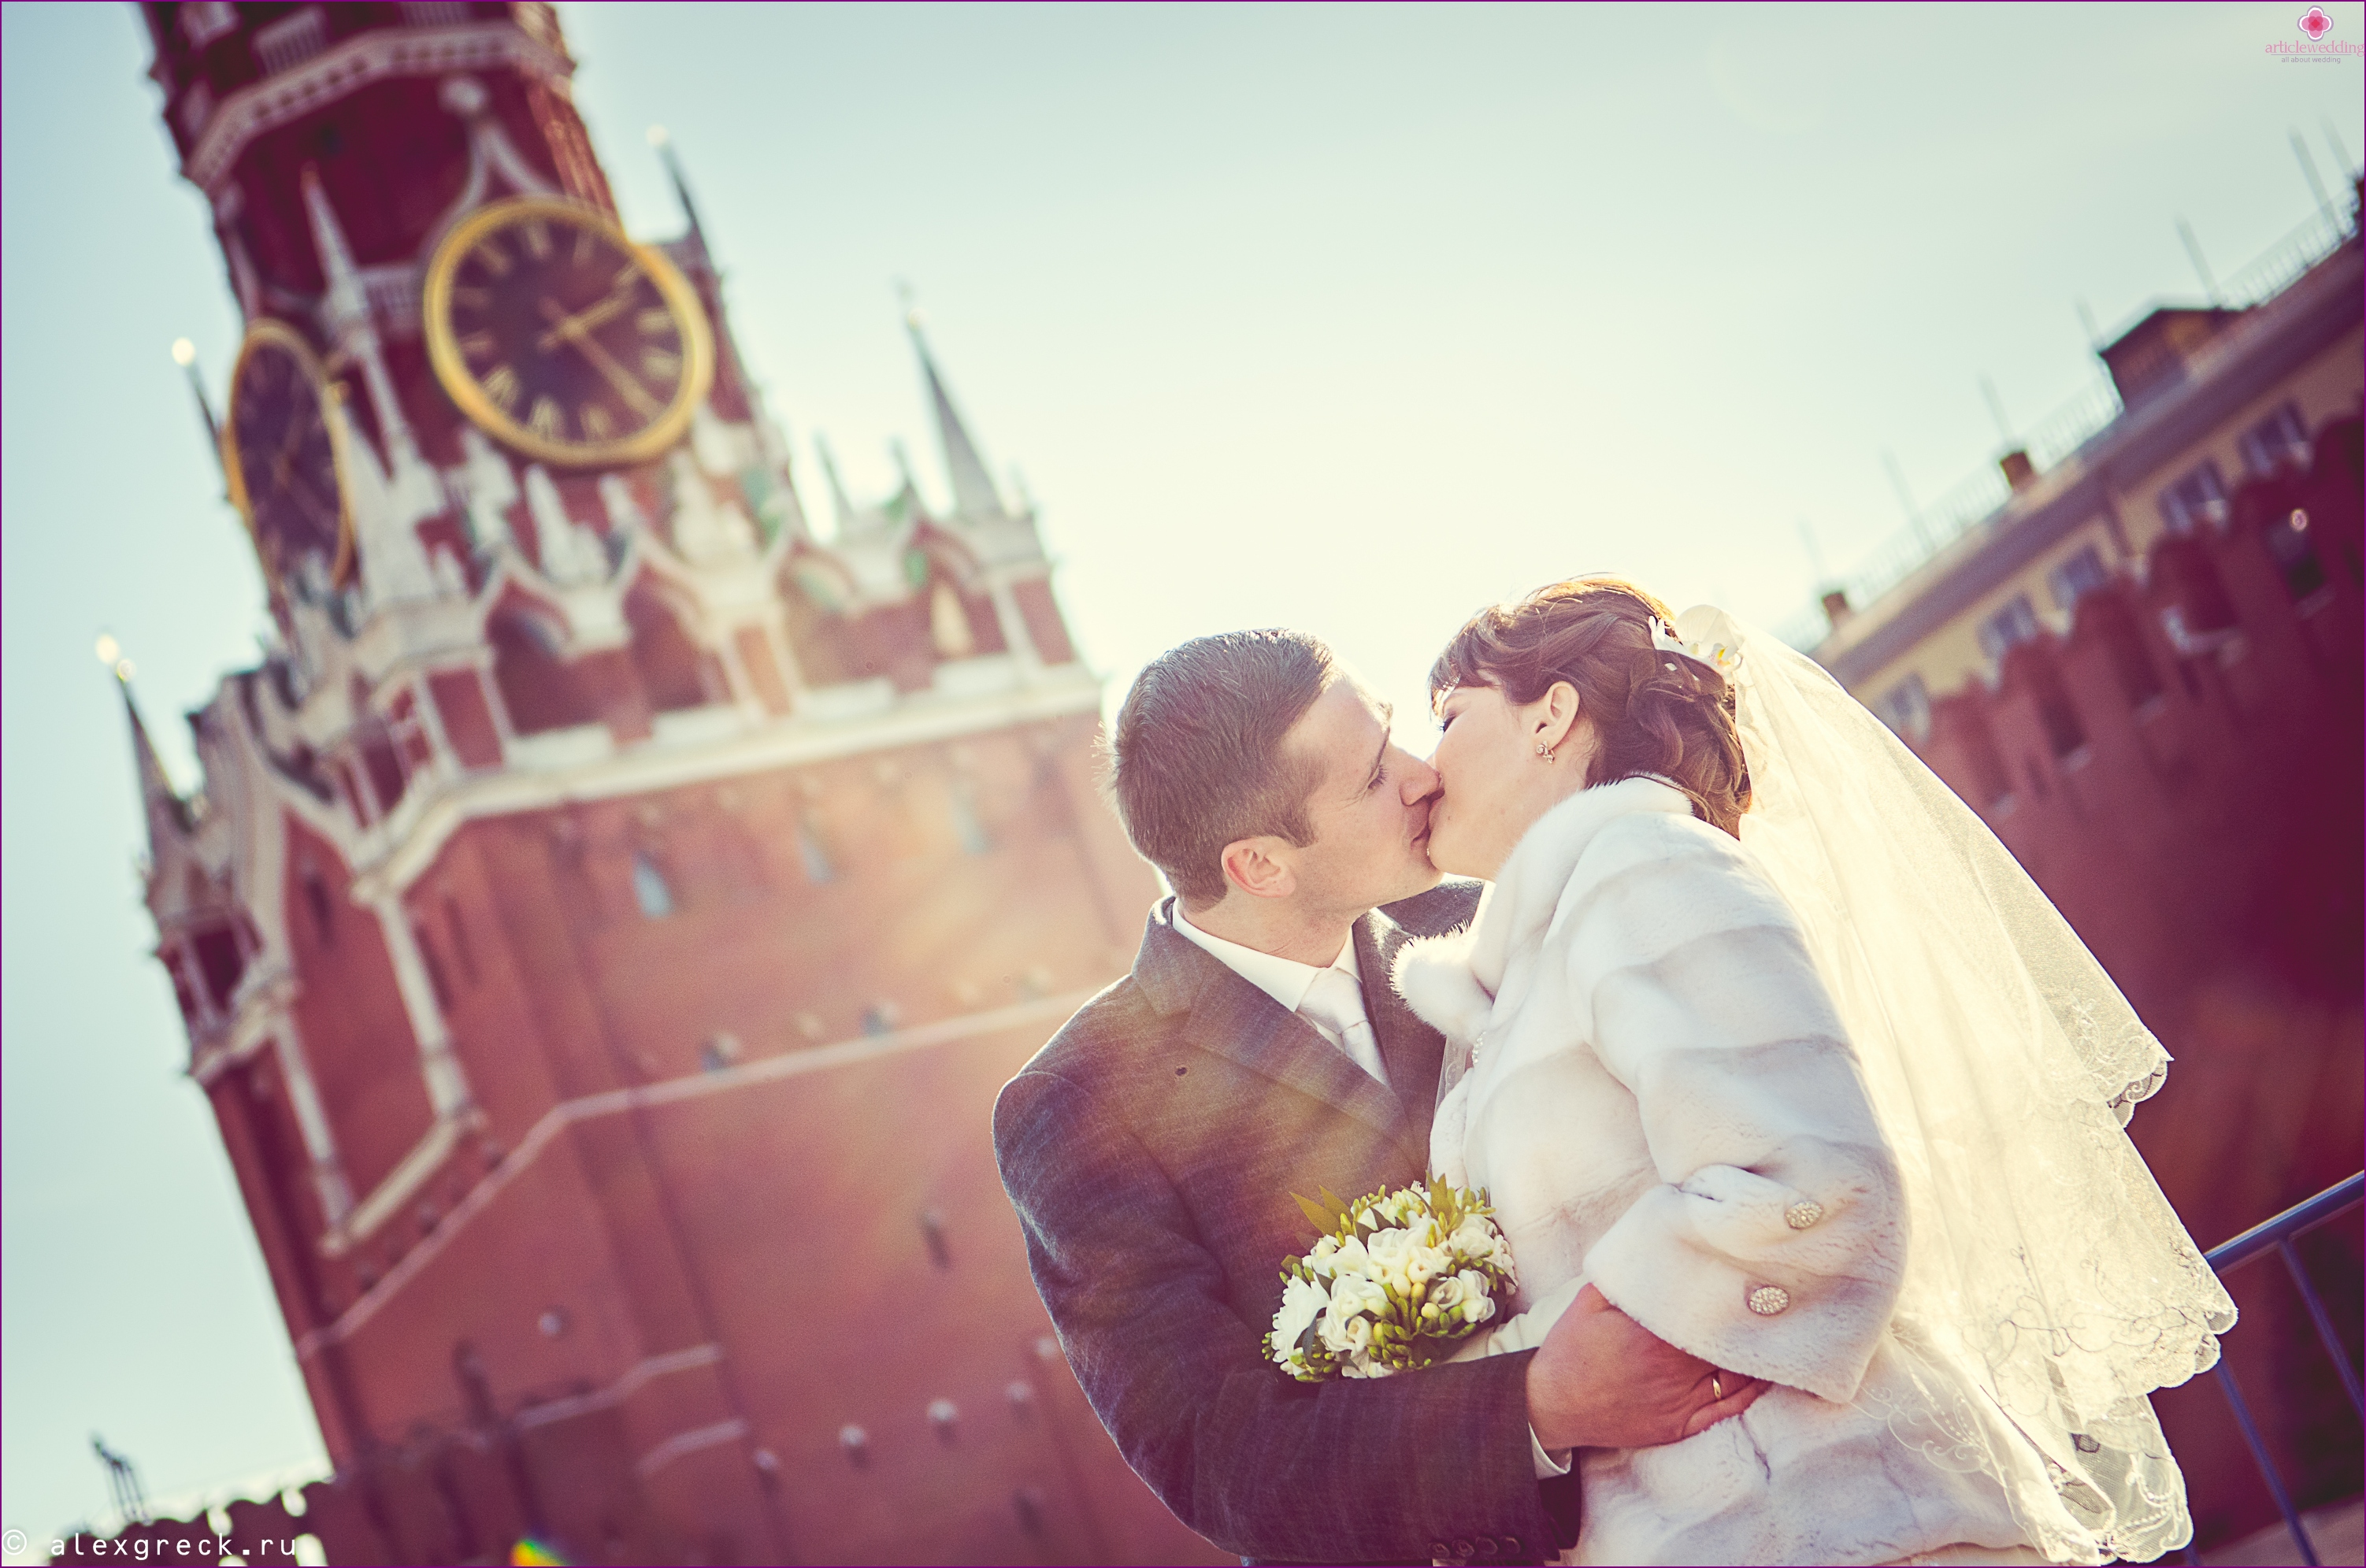 Red Square for the wedding walk